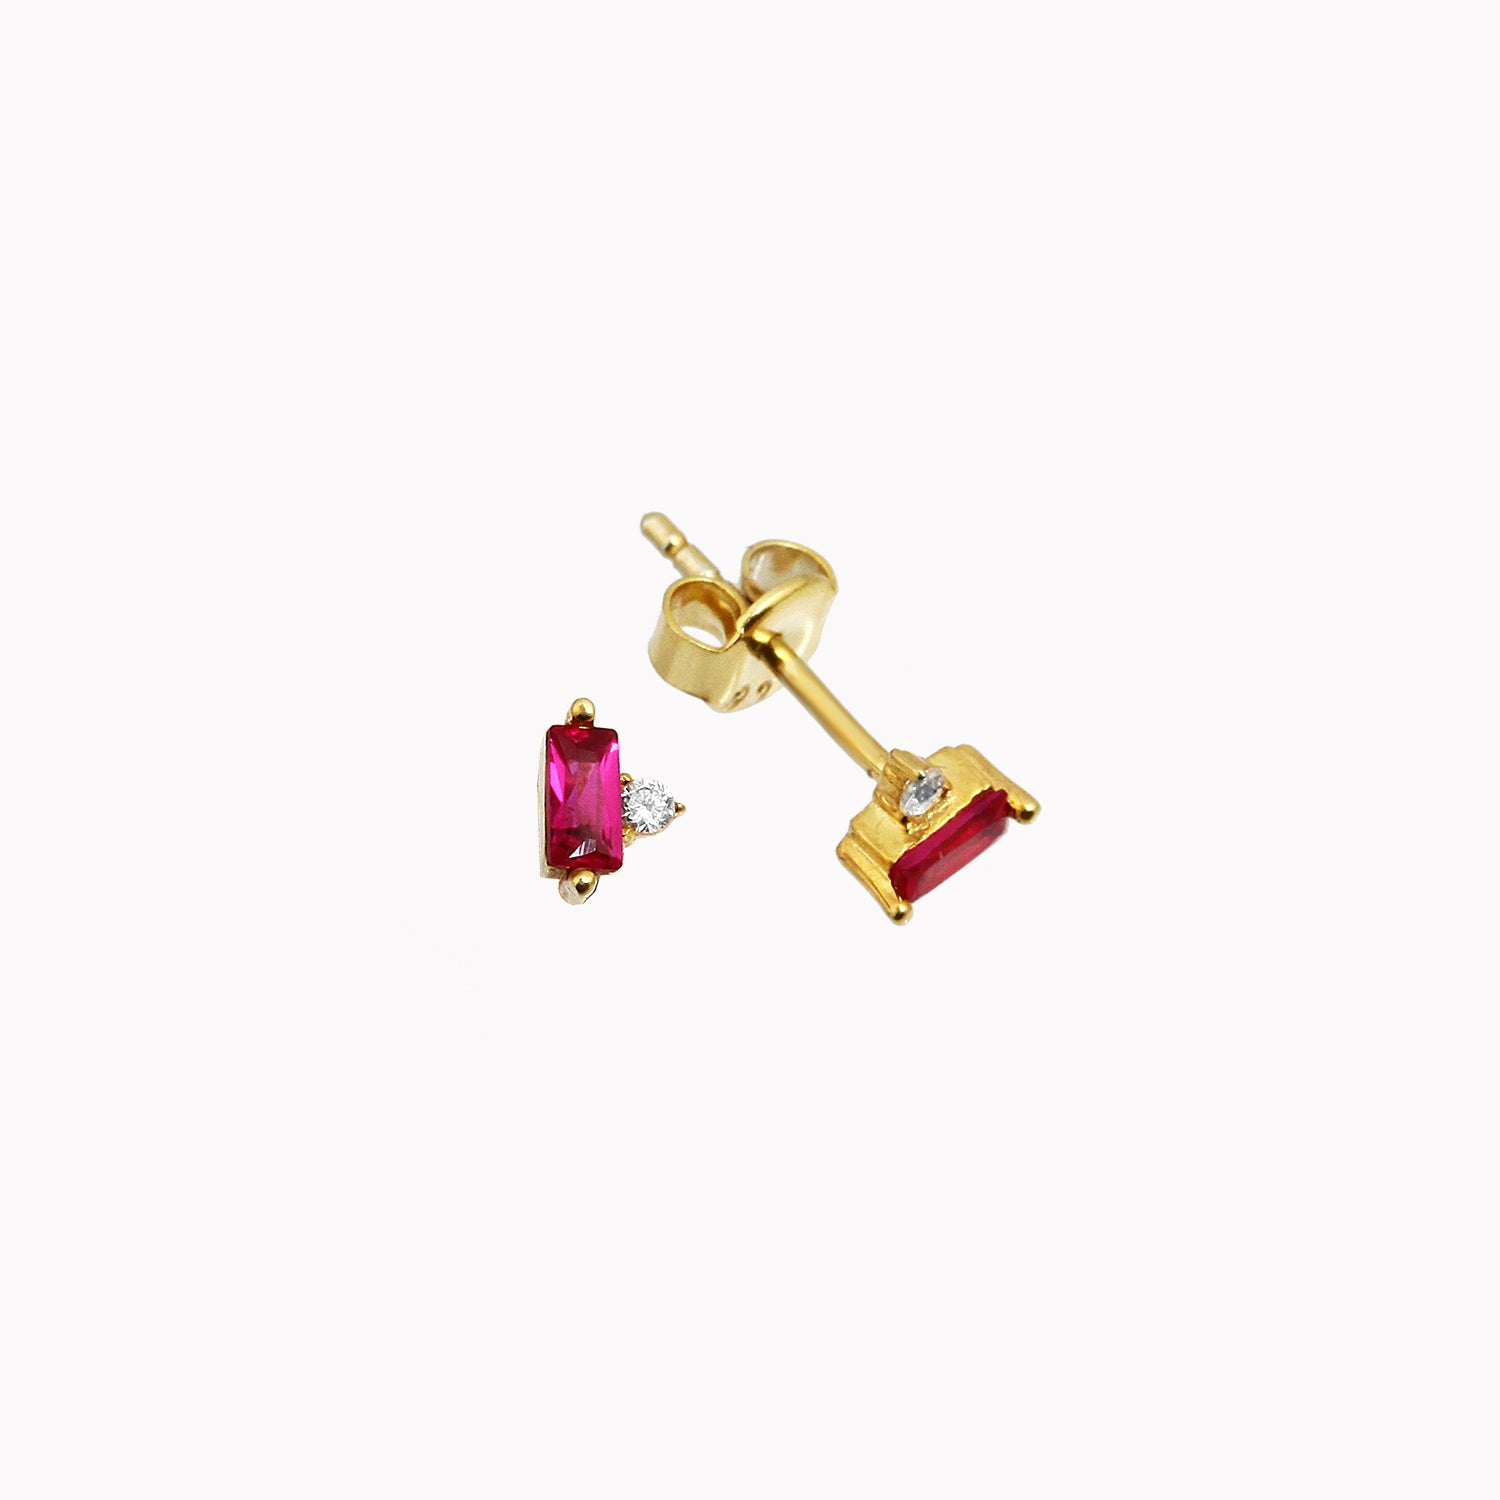 BONS EARRINGS PINK